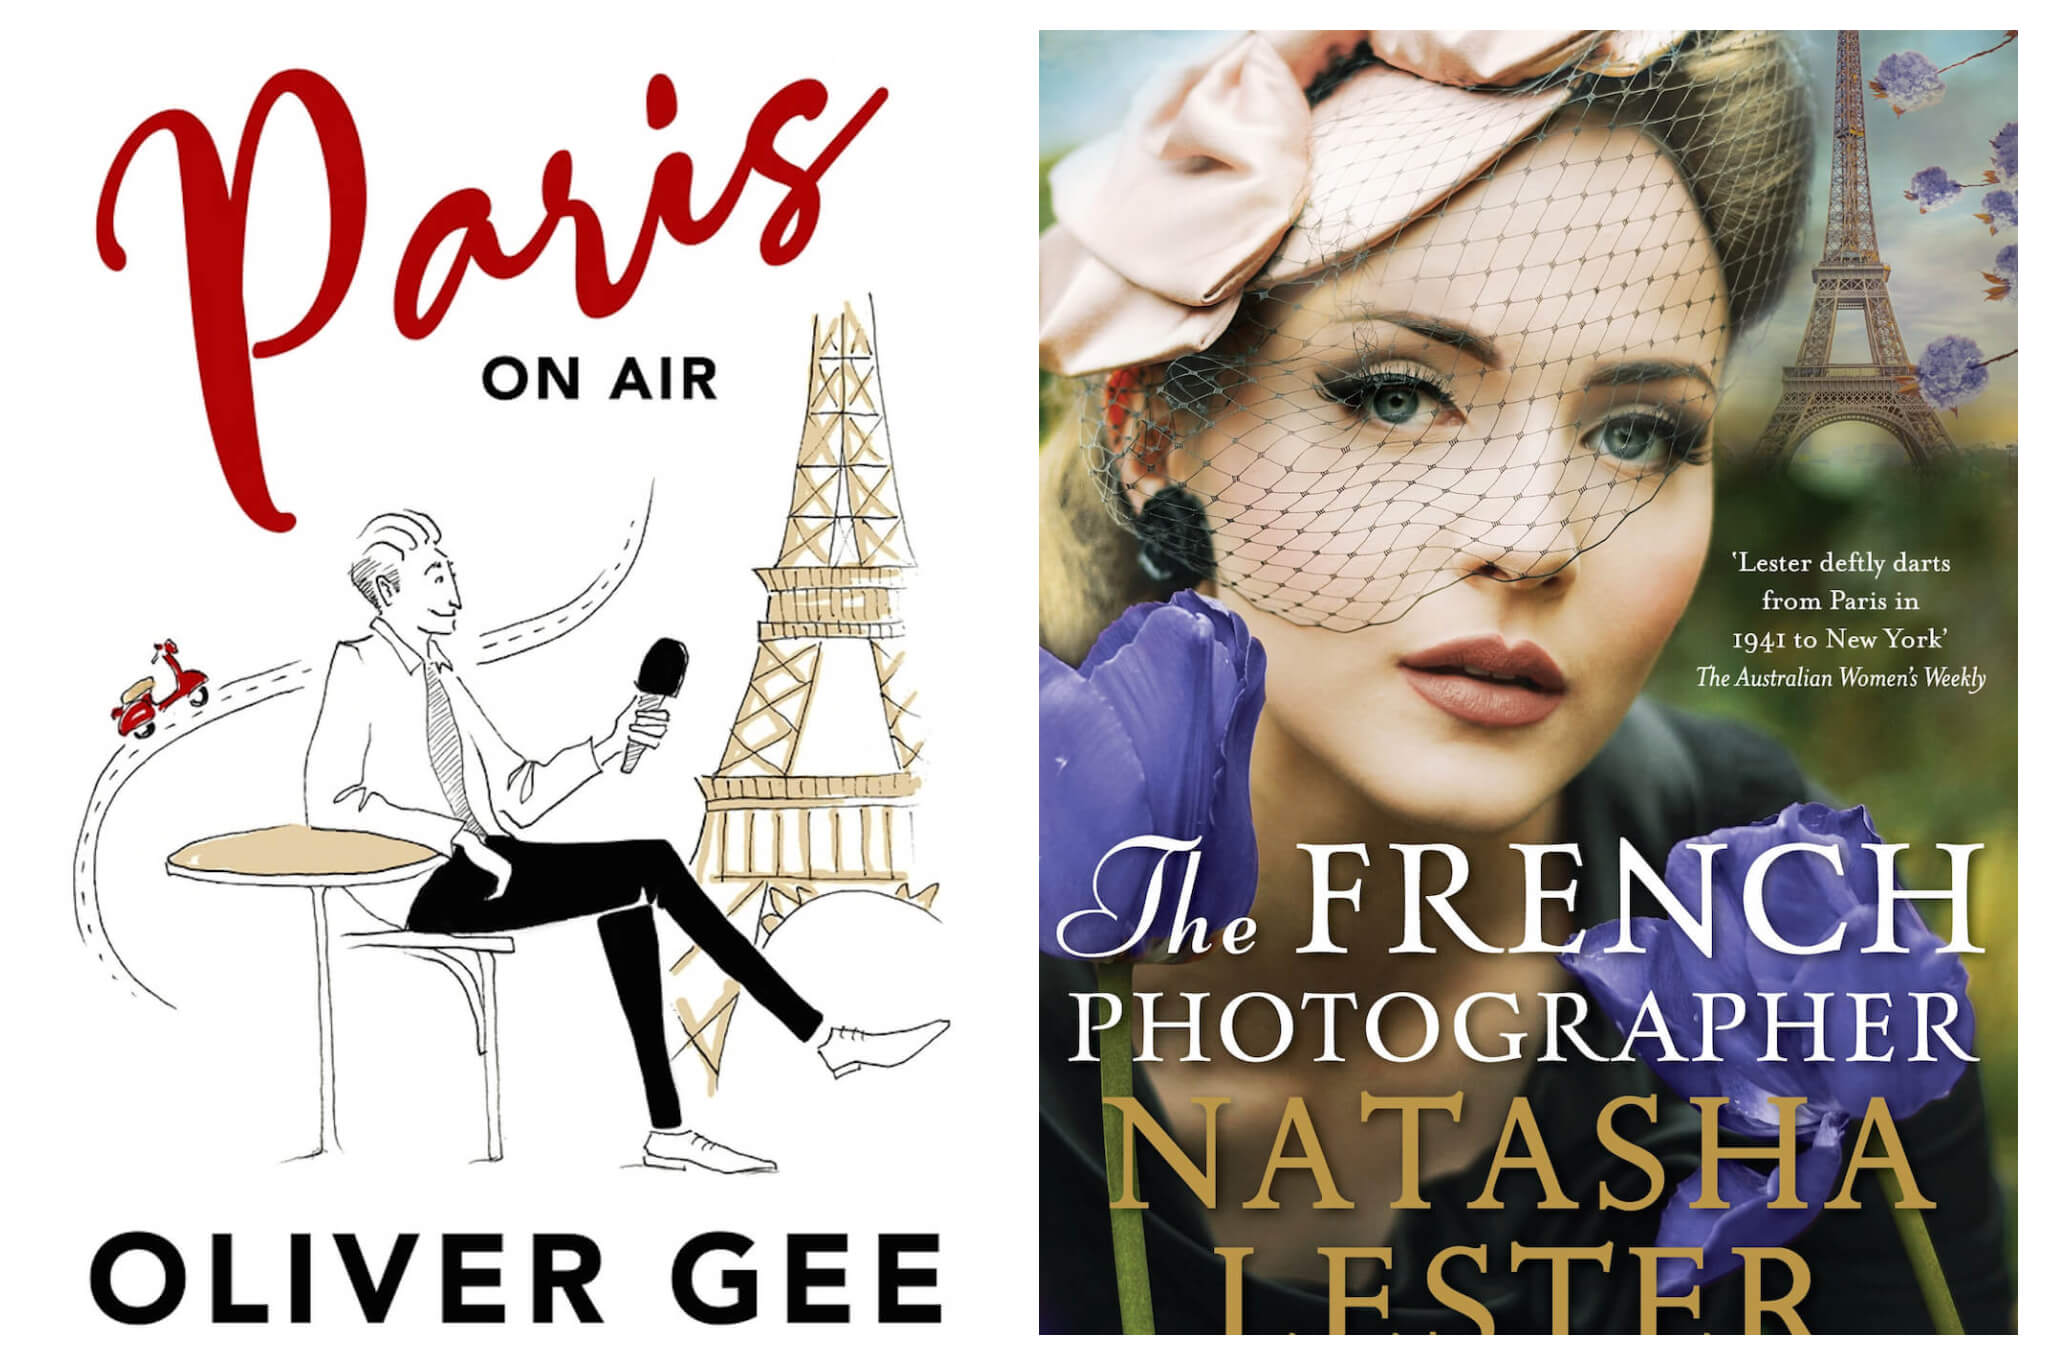 Left: Cover of Paris On Air by Oliver Gee Right: The French Photographer by Natasha Lester